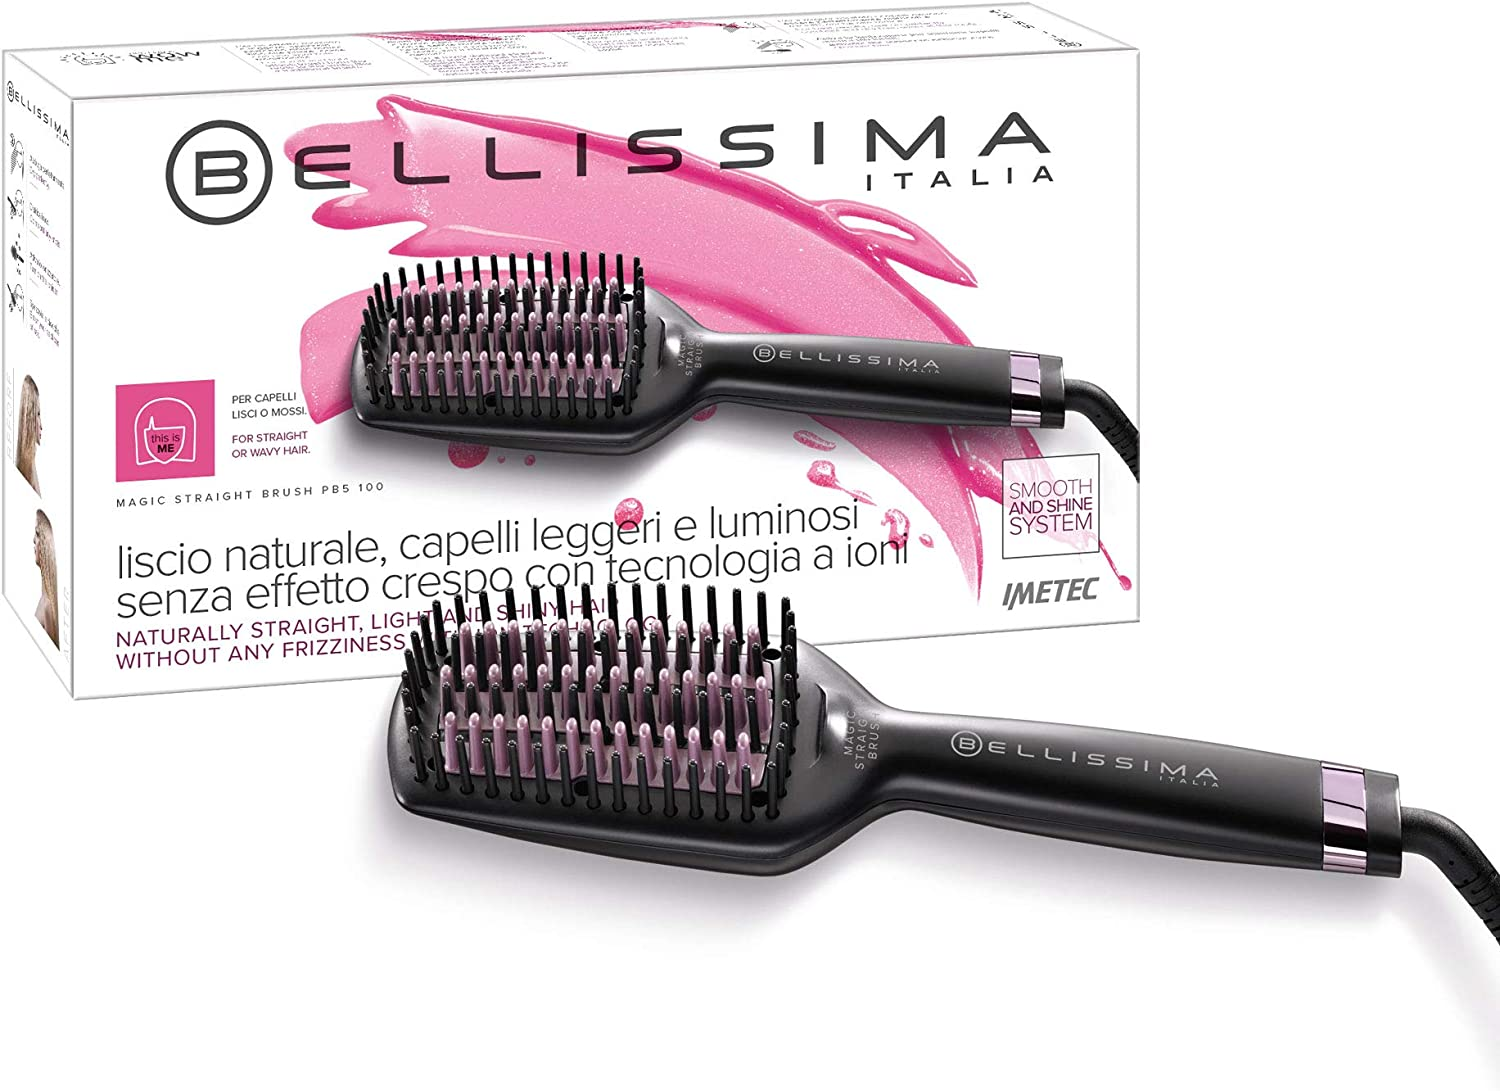 Imetec Bellissima Magic Straight Brush PB5 100 Cepillo Eléctrico ...